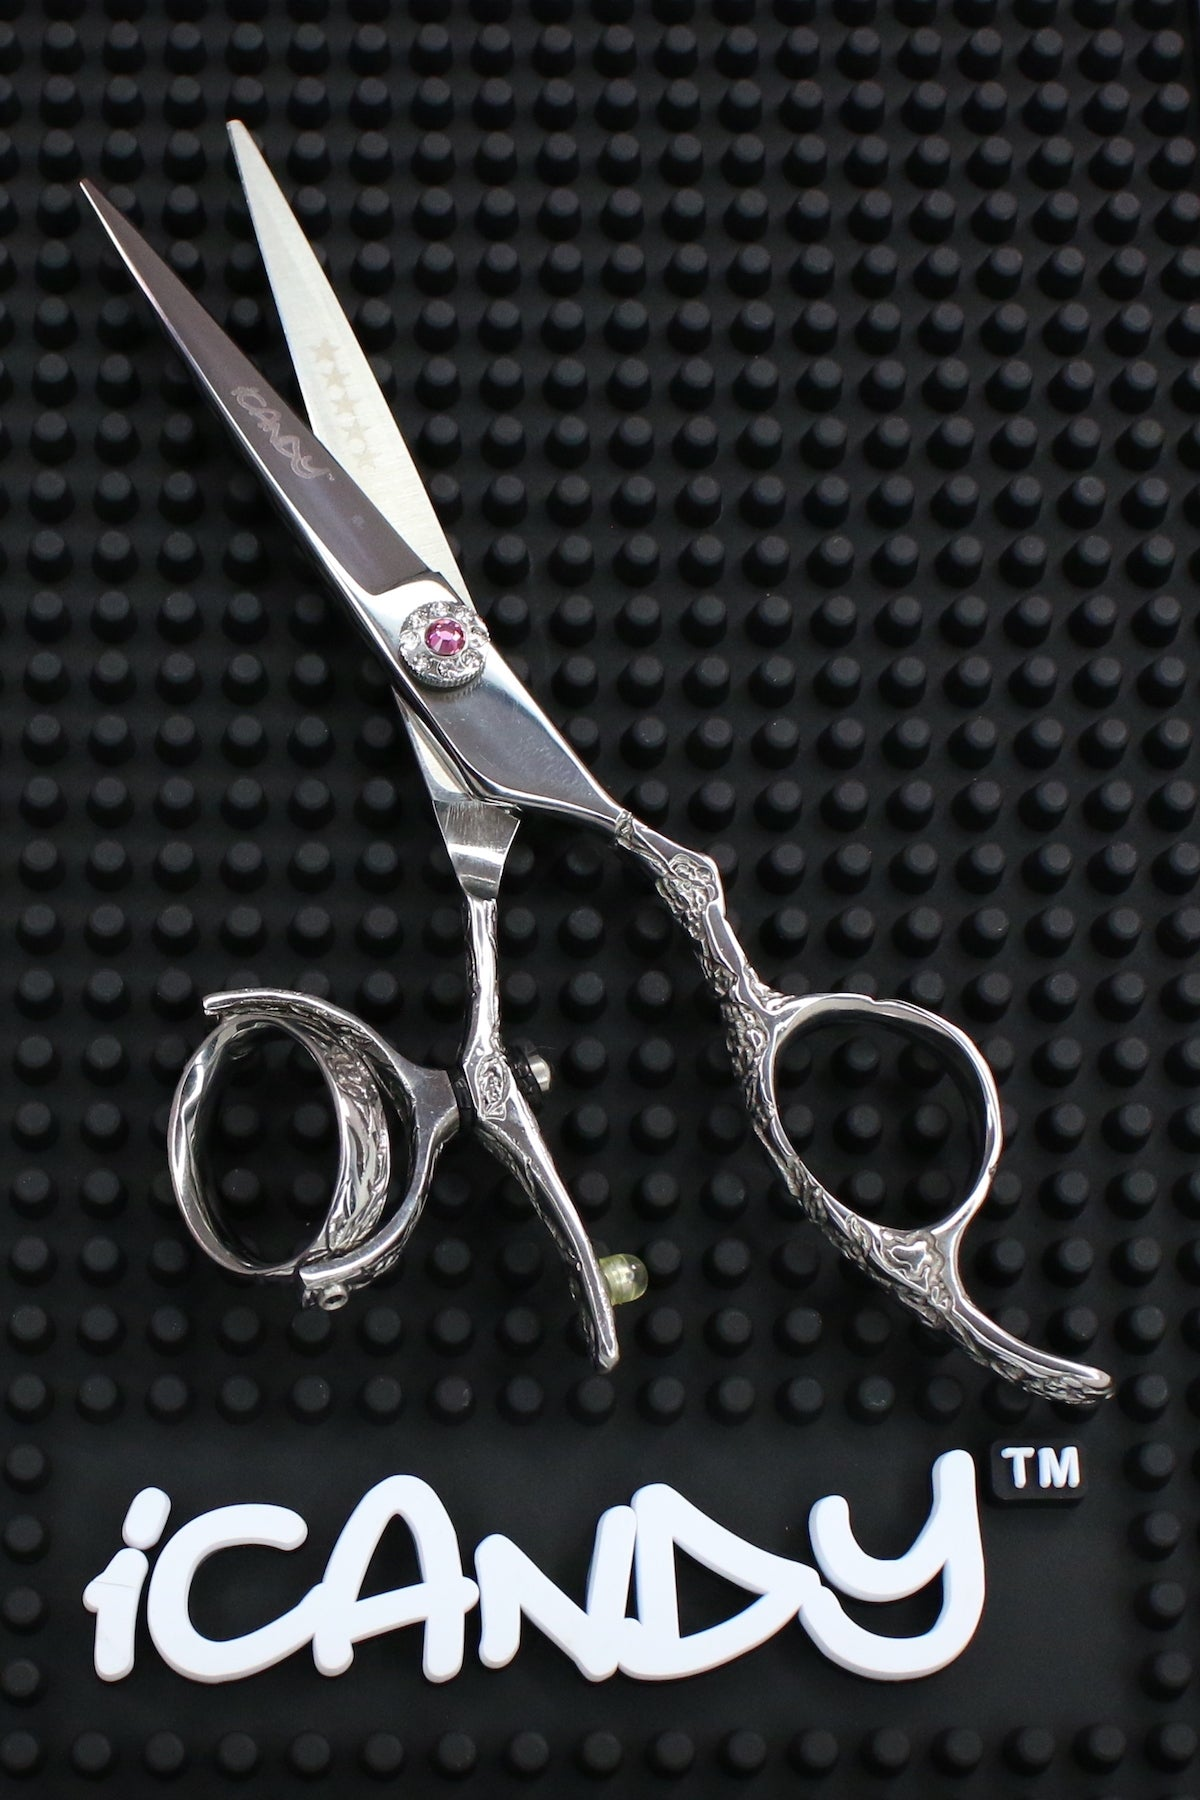 iCandy Dream Mirror Swivel Scissors Bundle - Limited Edition !  (5.5 inch) - iCandy Scissors